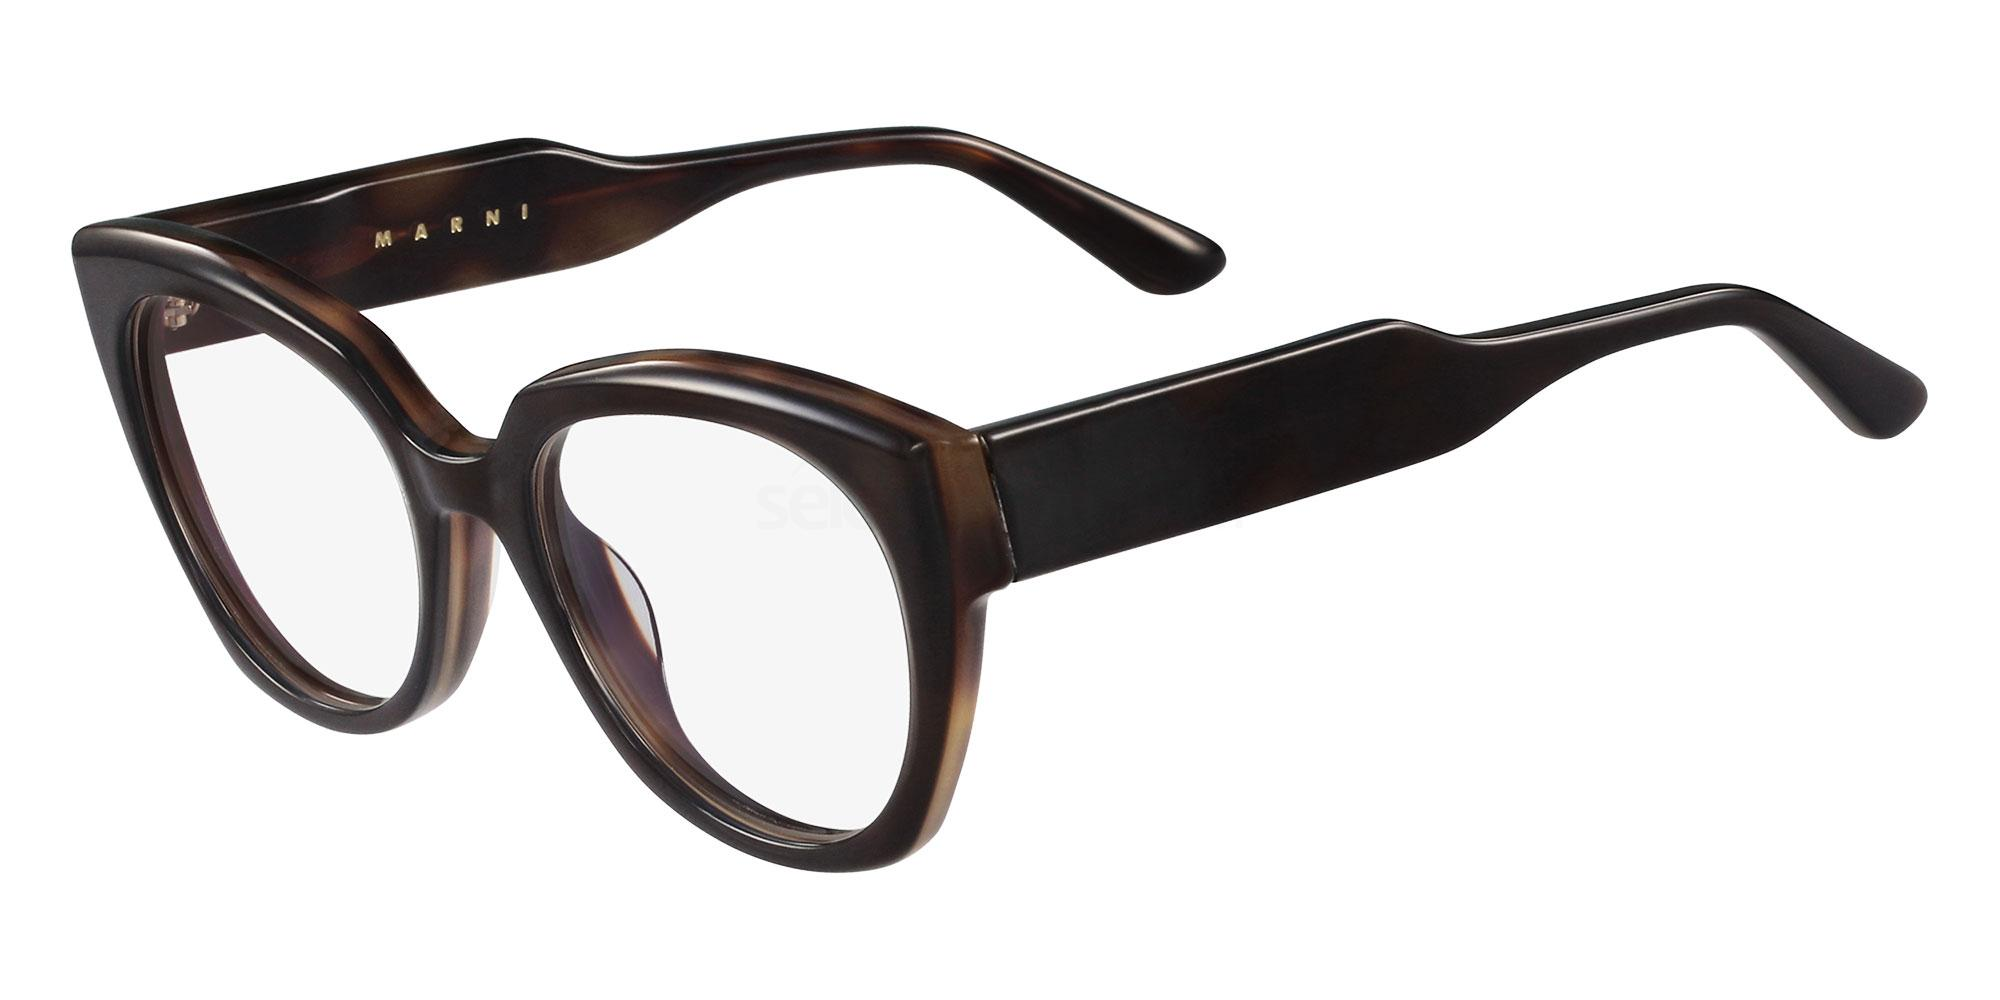 004 ME2607 Glasses, Marni